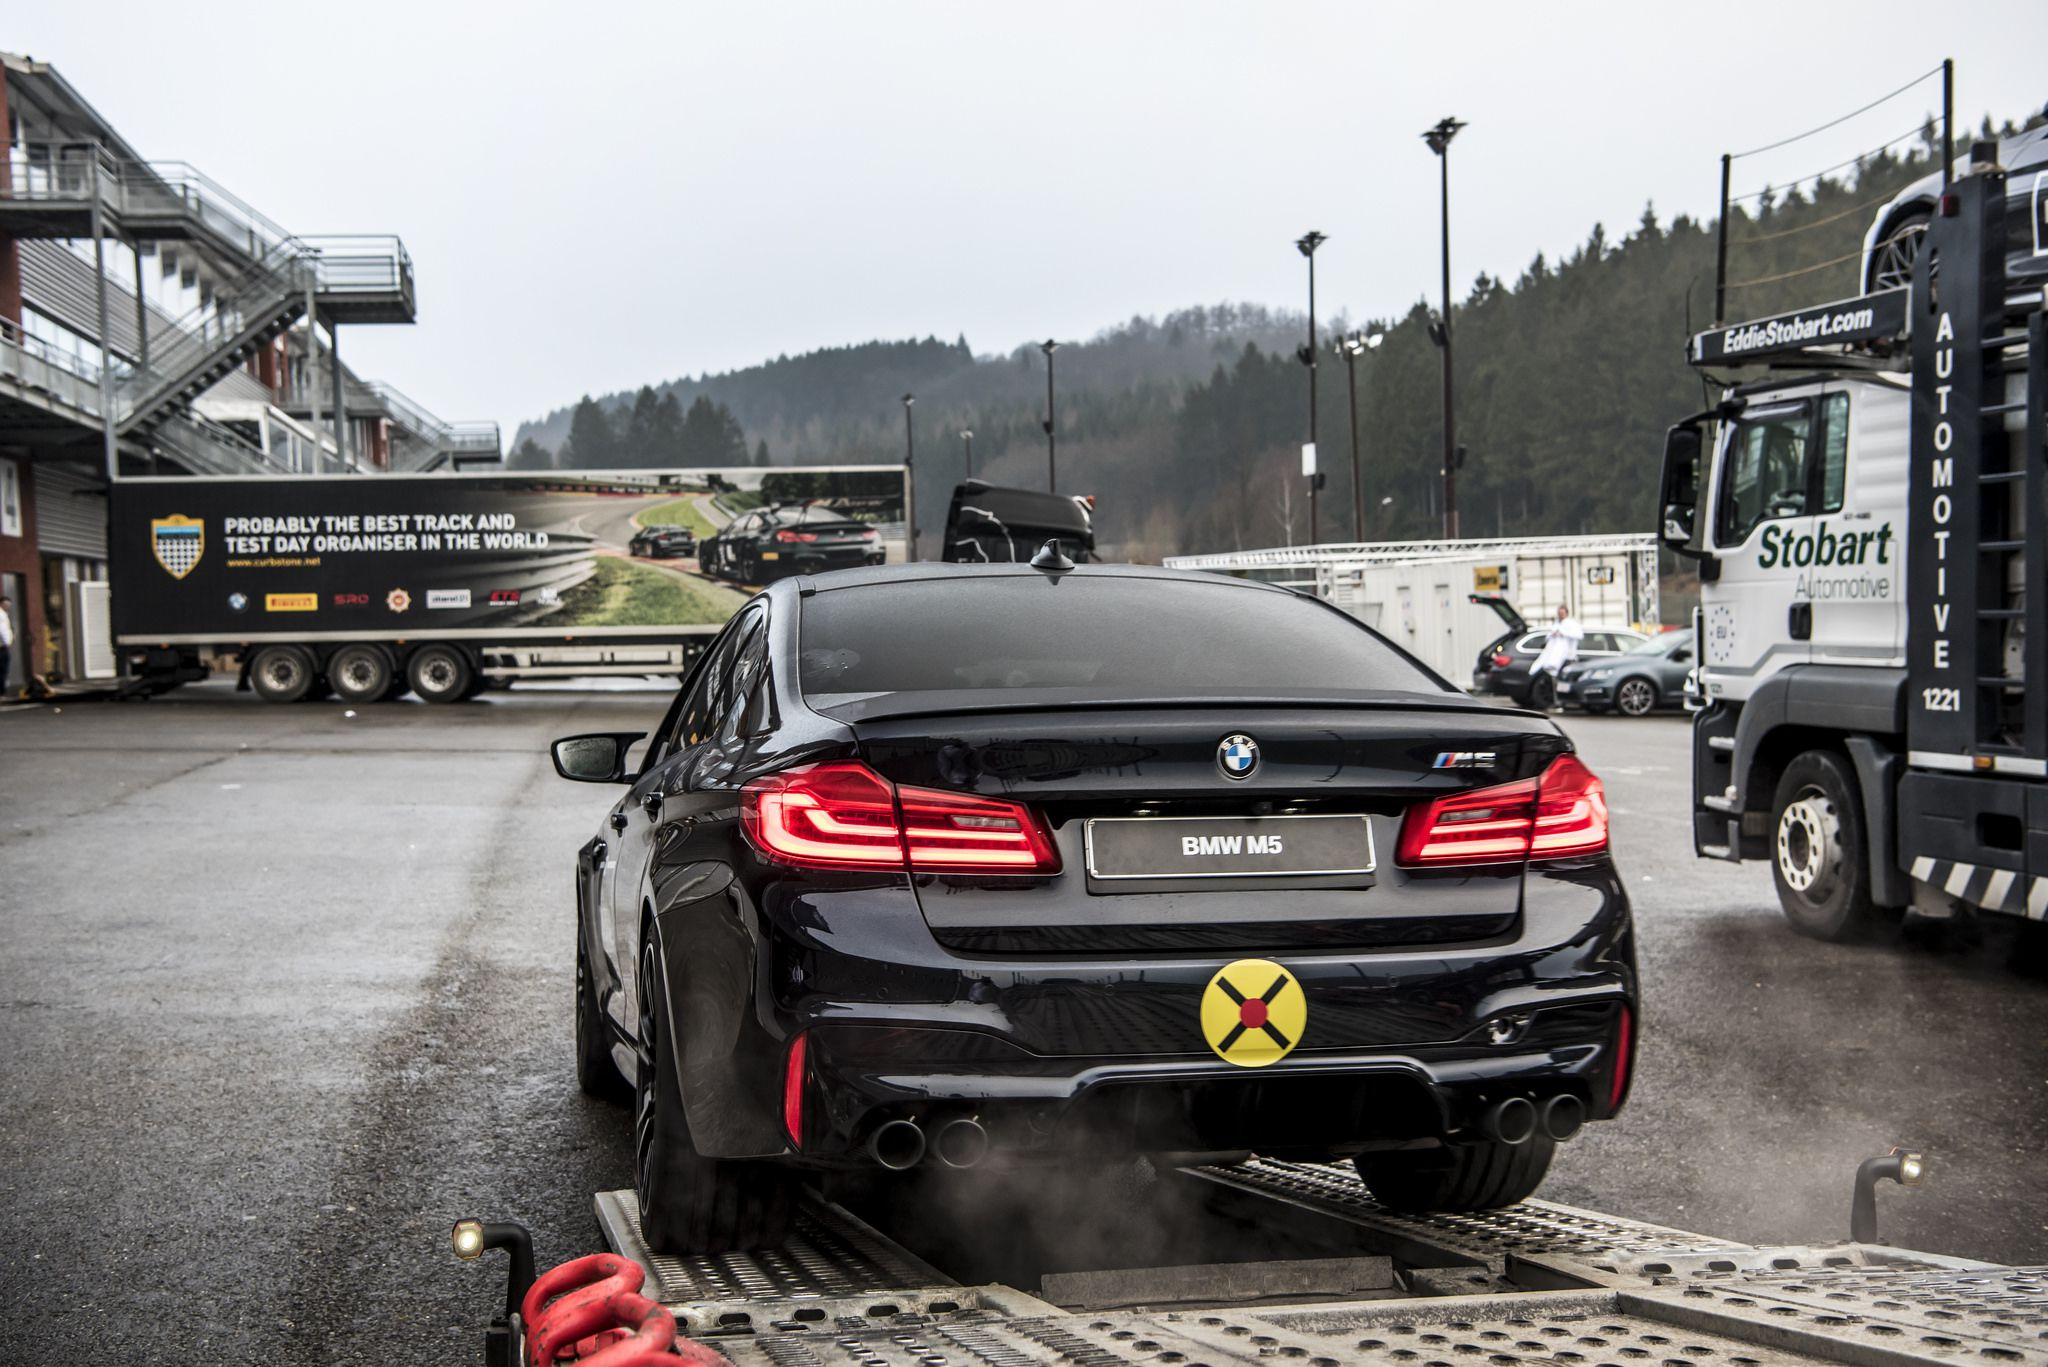 BMW M4 Cs >> 14+ BMW M5 F90 2018 wallpapers in HD